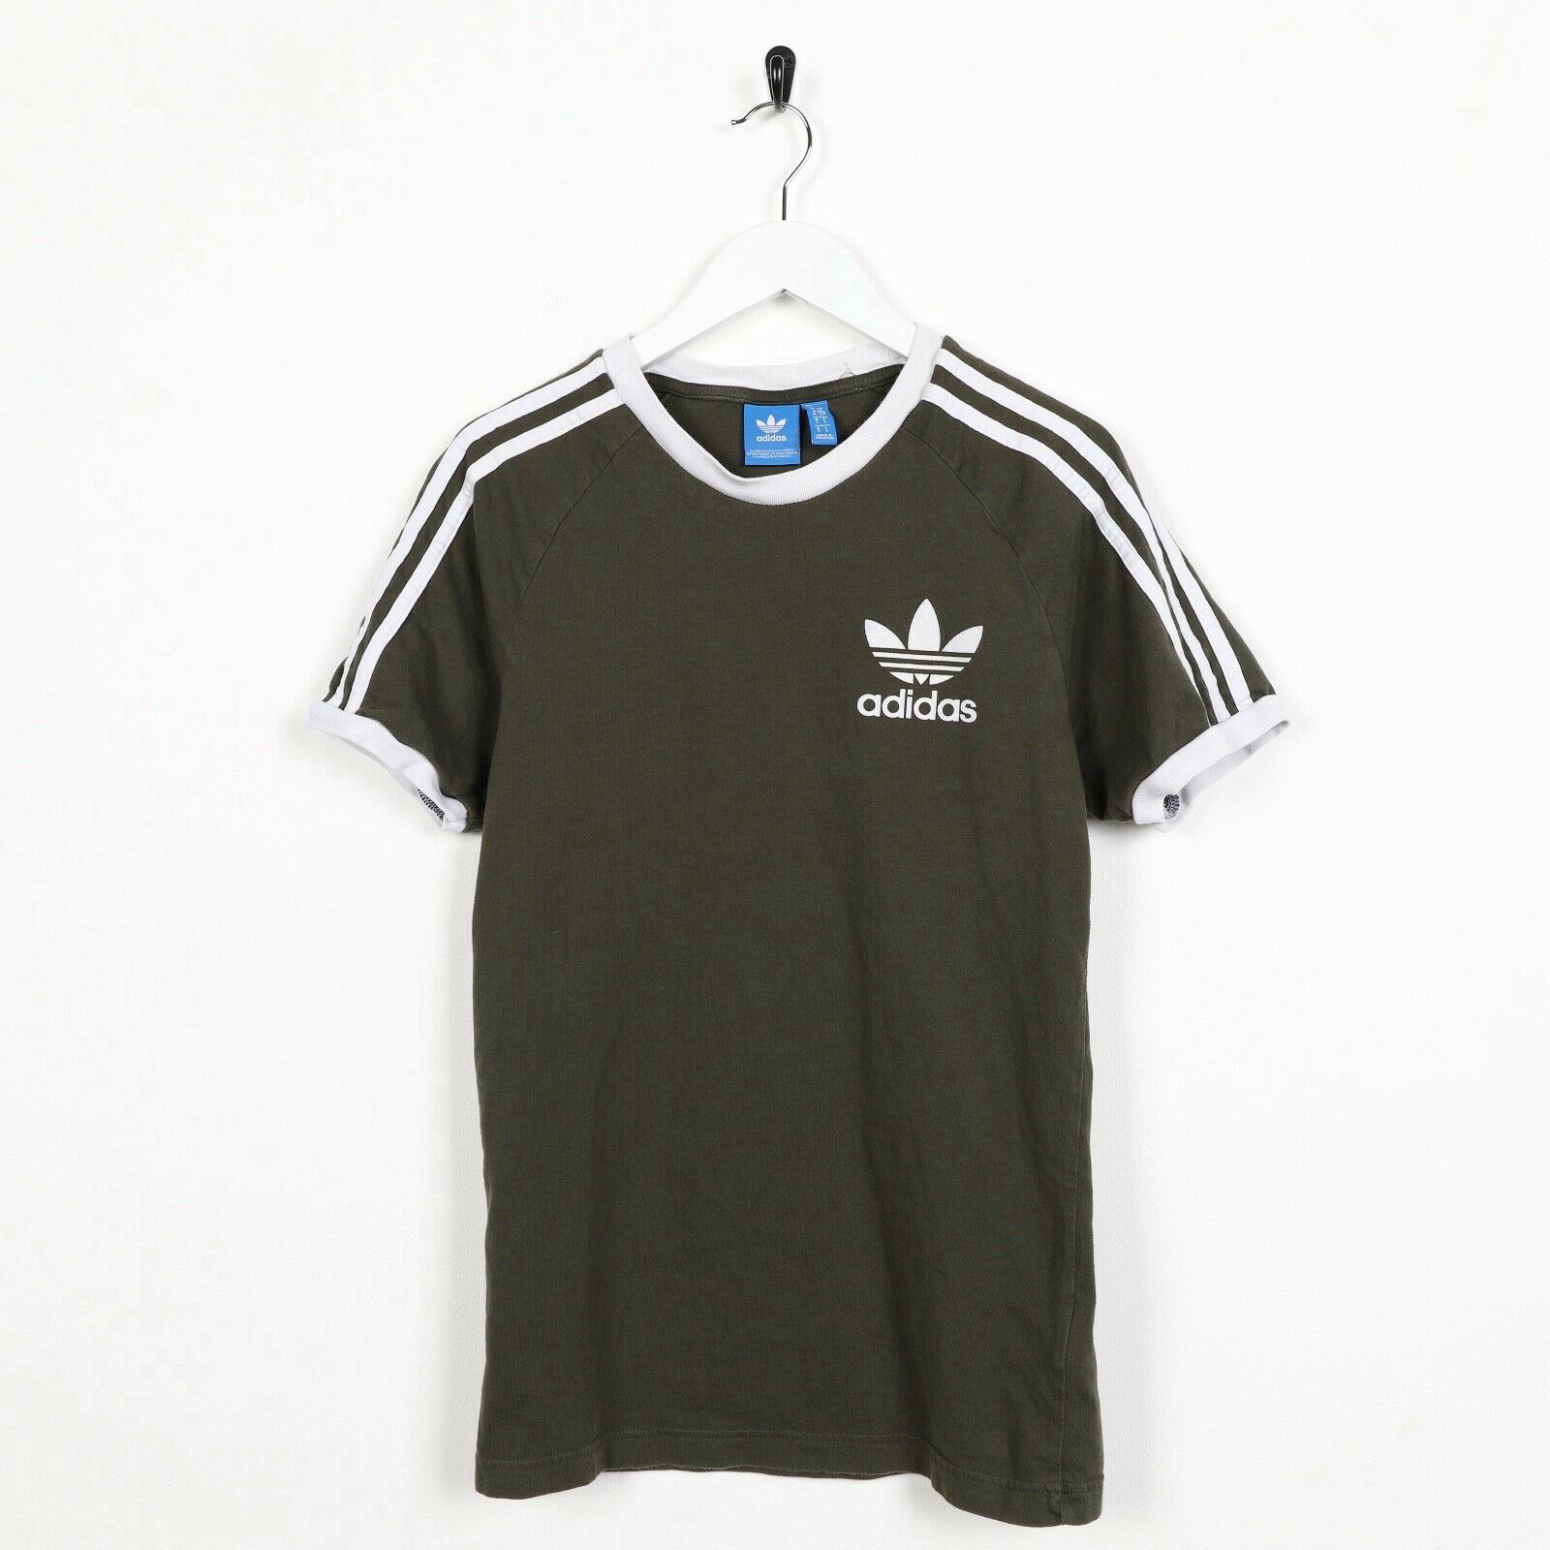 Unisex Vintage ADIDAS ORIGINALS Small Logo T Shirt Tee Green | Small S